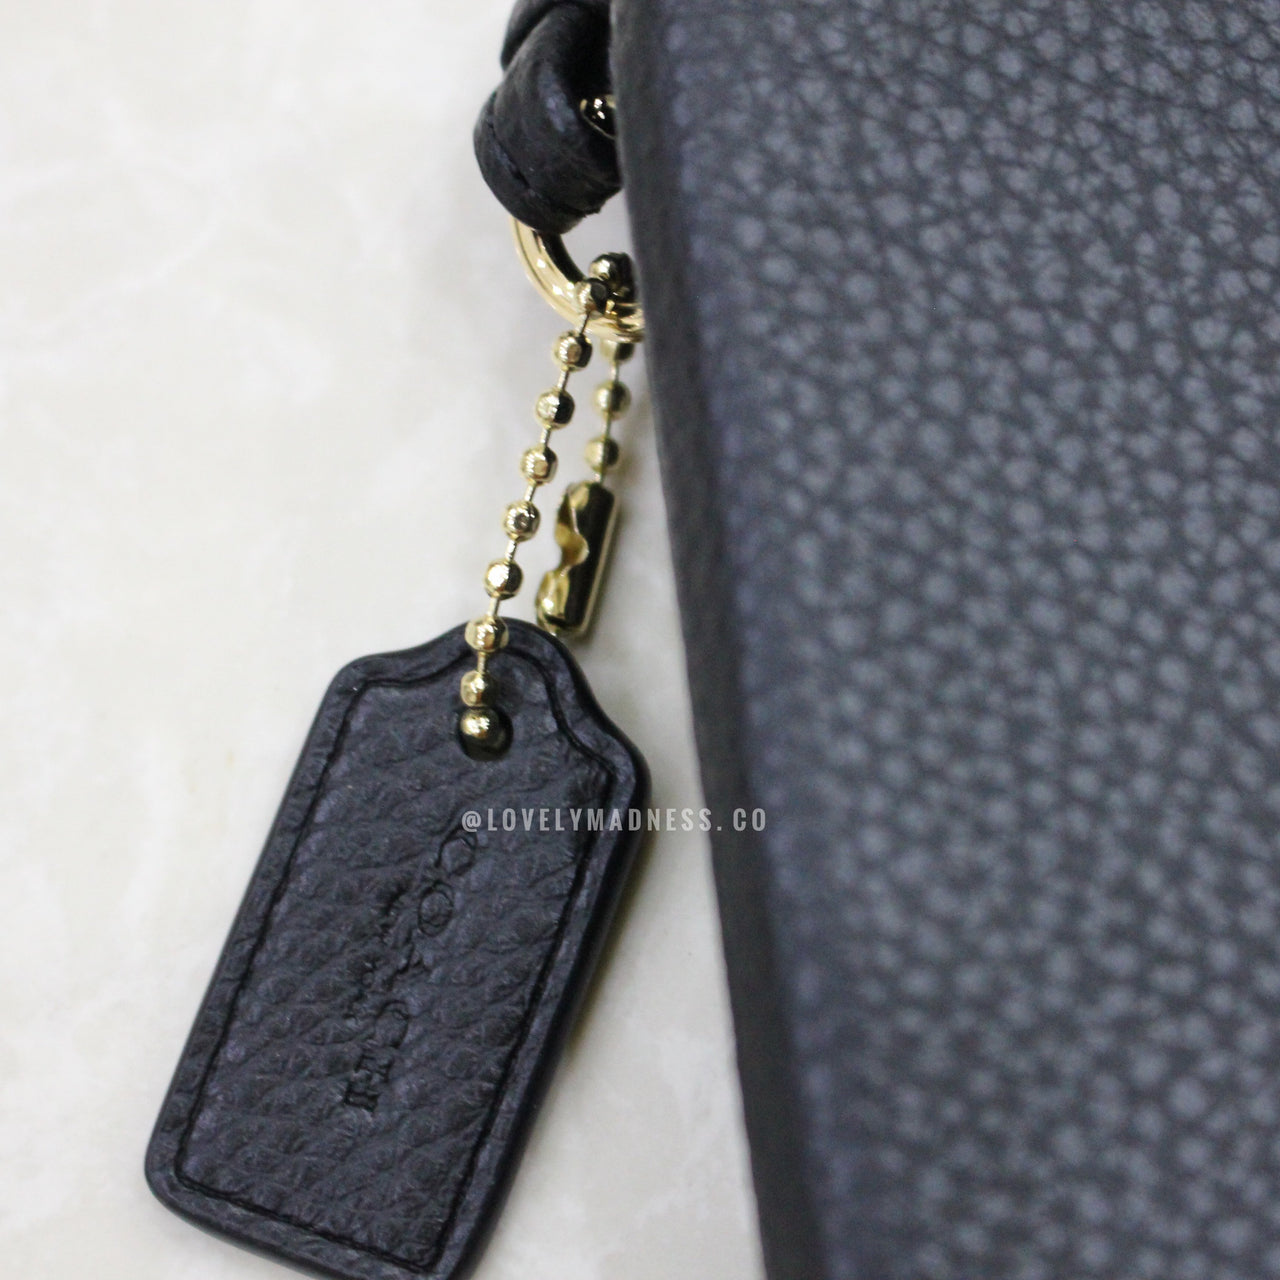 COACH DOUBLE CORNER ZIP WALLET POLISHED PEBBLE LEATHER - LovelyMadness Clothing Online Fashion Malaysia